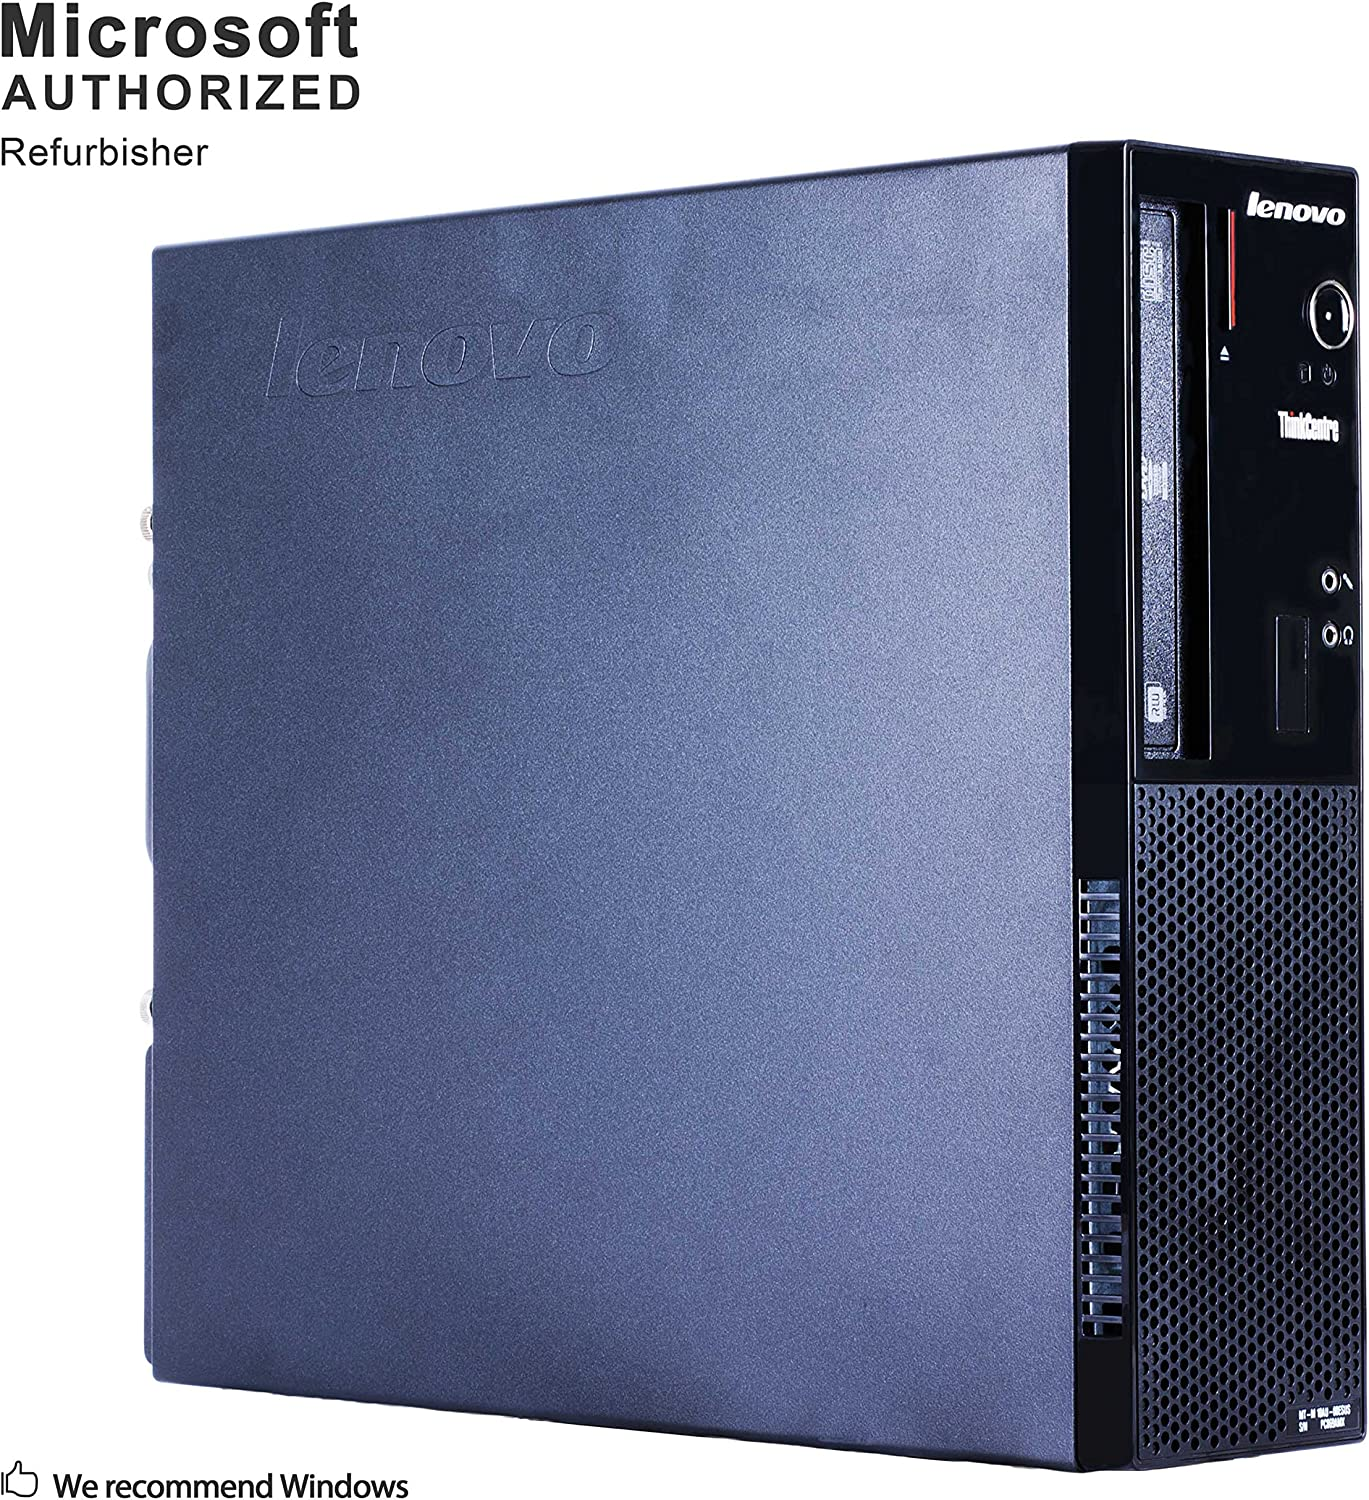 Lenovo ThinkCentre E73 Small Form Factor Desktop PC, Intel Quad Core i5 4570 up to 3.6GHz, 16G DDR3, 1T, WiFi, BT 4.0, DVD, Windows 10 64-Multi-Language Support English/Spanish/French(Renewed)